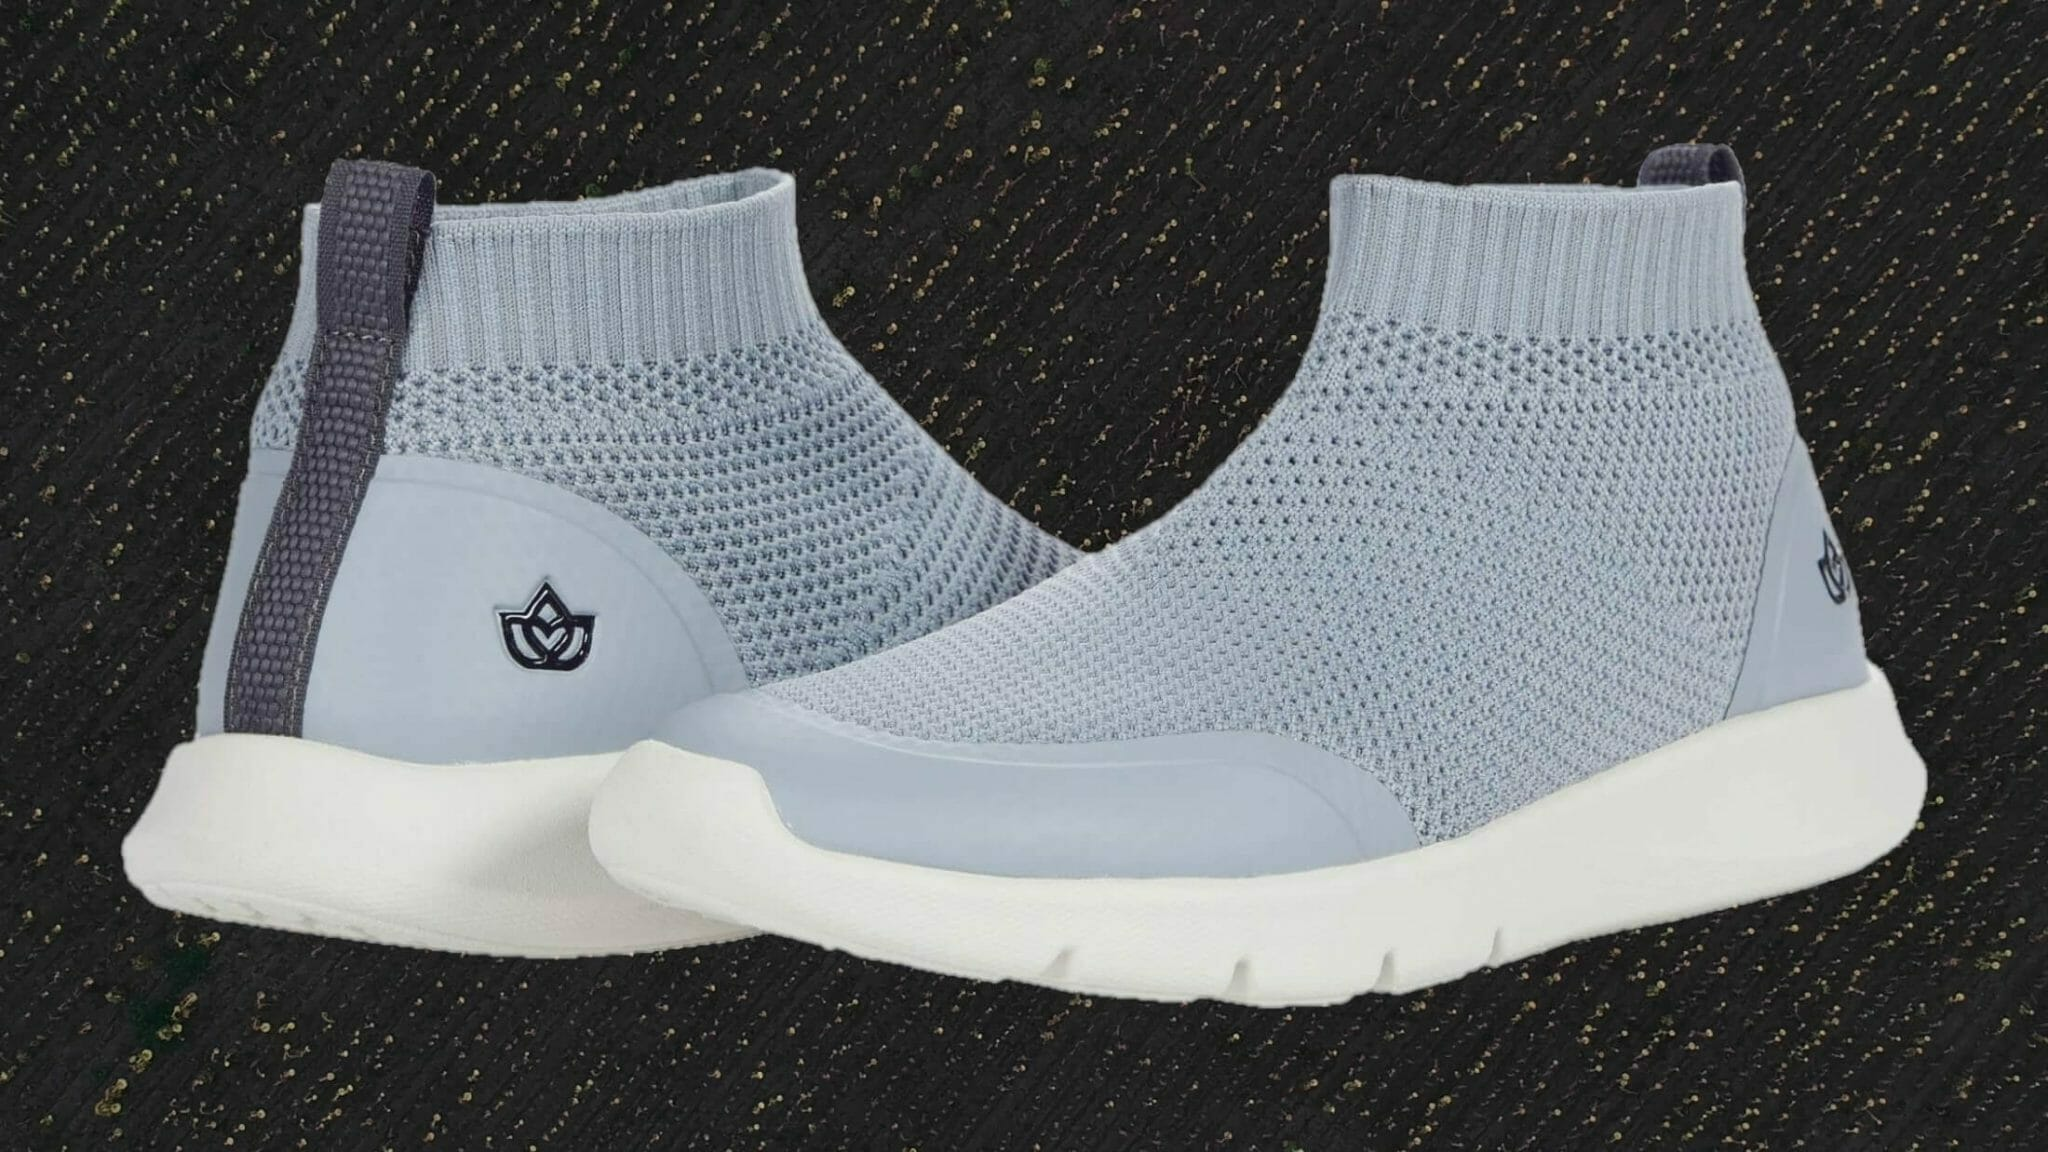 Spenco yoga stretch ankle-height shoes with full knit upper.